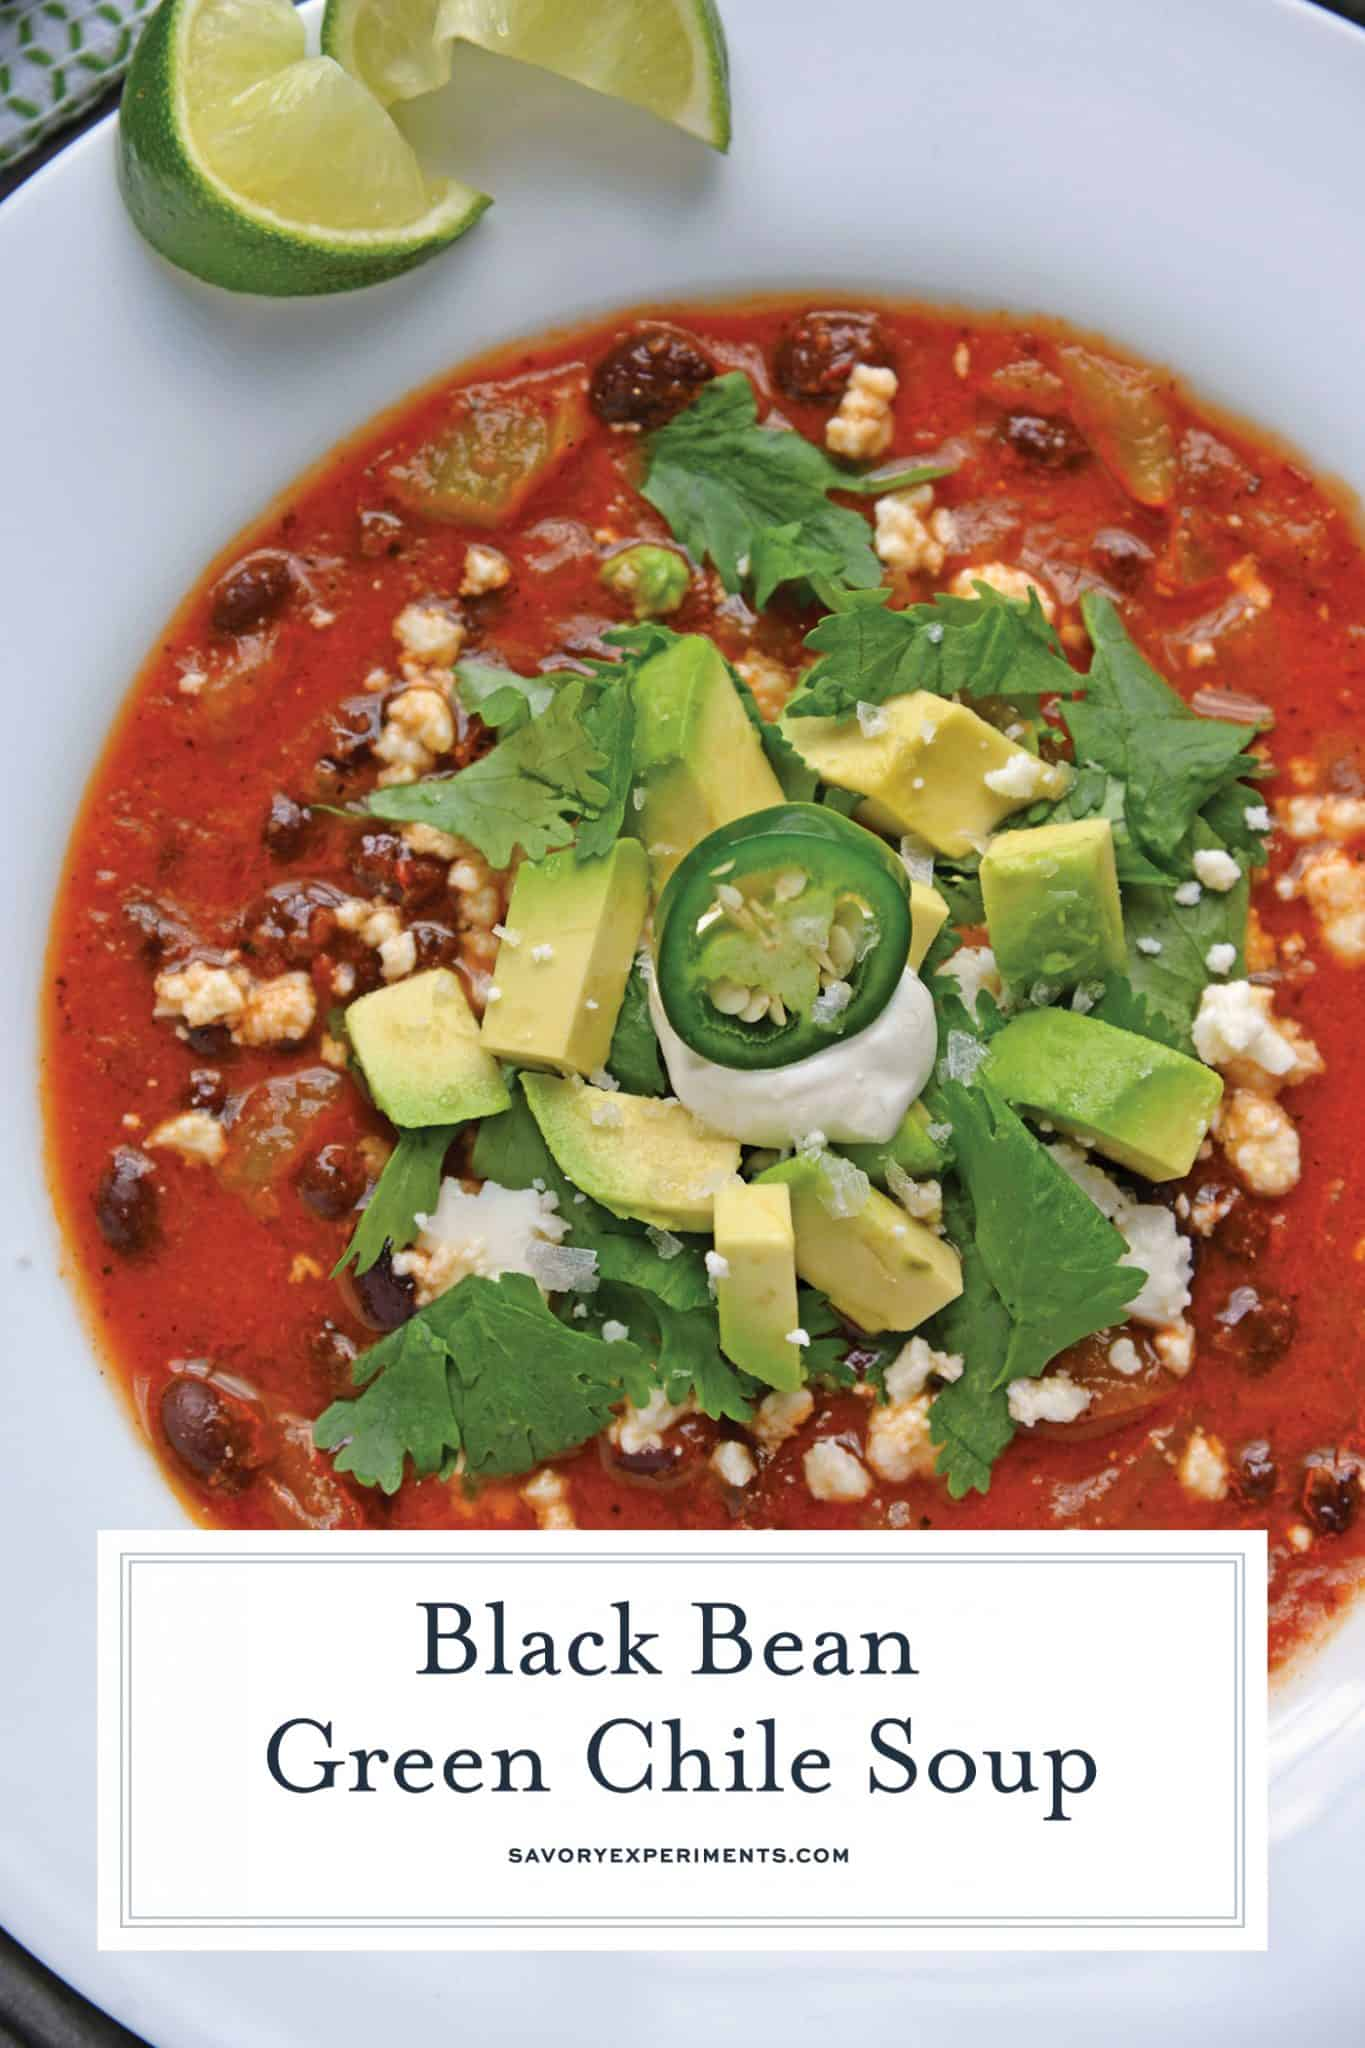 Black bean green chile soup is a tomato based soup with smoky chipotle peppers and robust flavors. Top with avocado, cilantro and queso fresco! #easysoups #souprecipes www.savoryexperiments.com